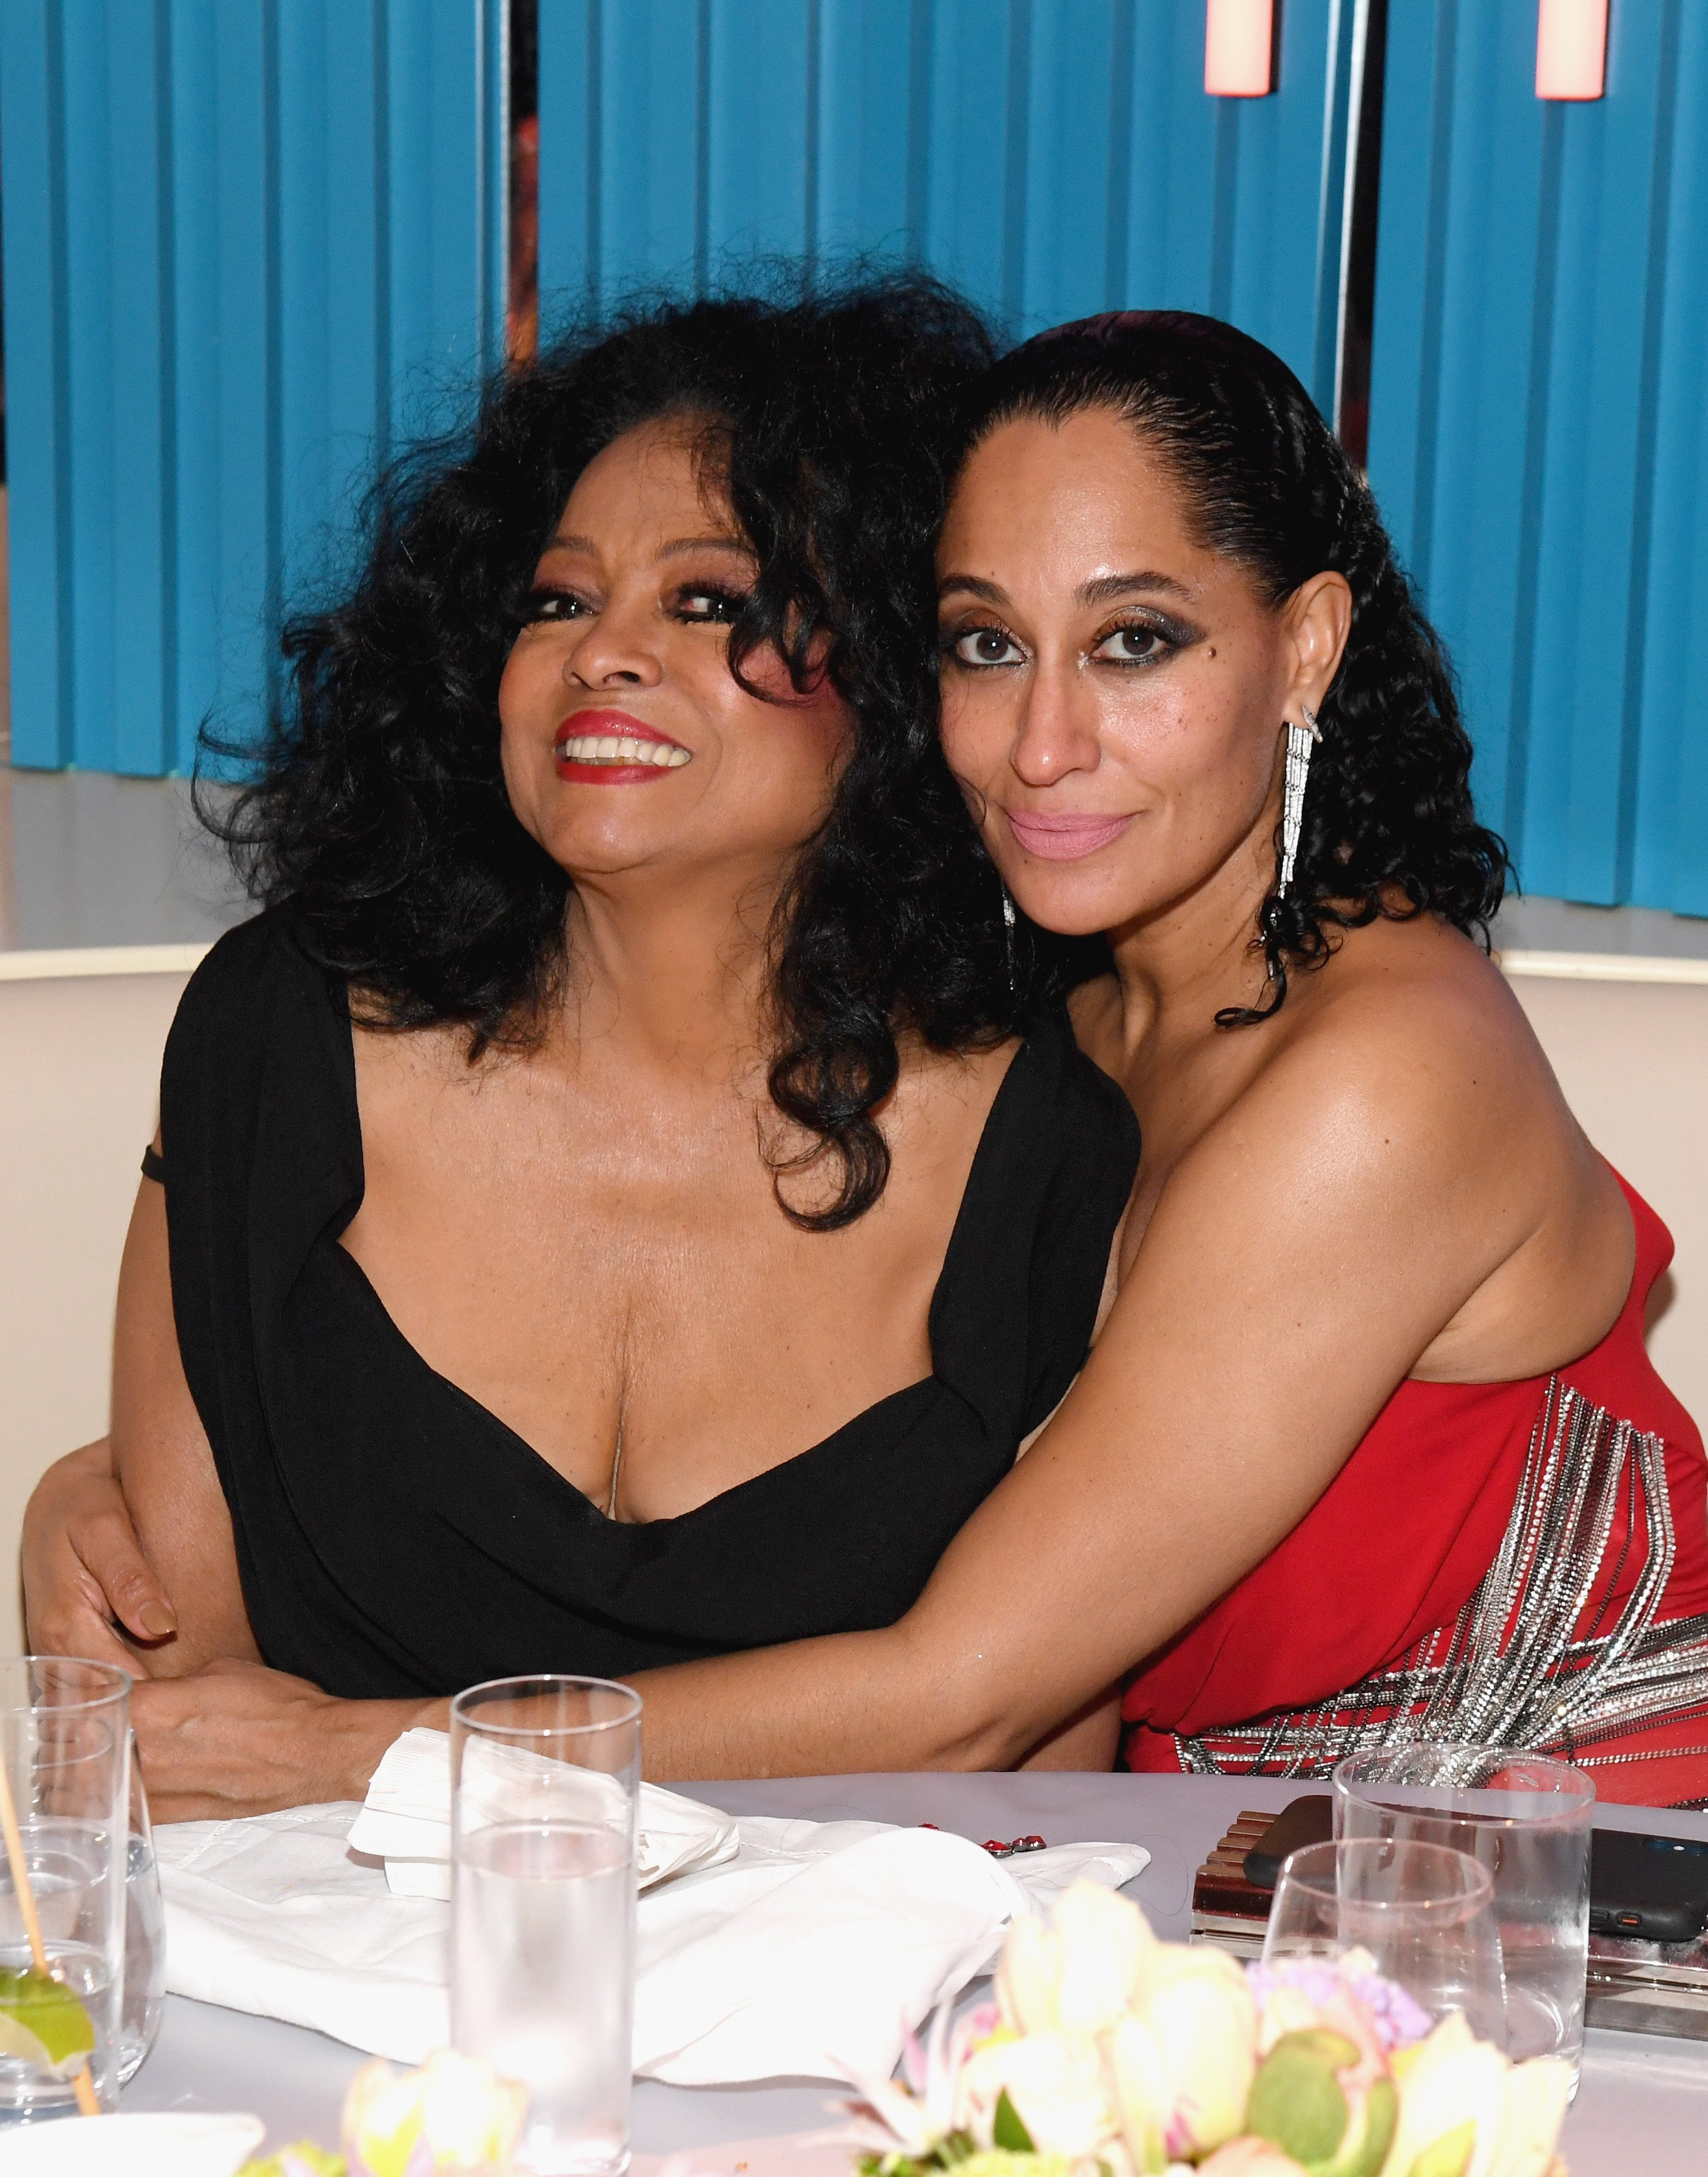 Tracee Ellis Ross hugging her mother, Diana Ross at the 2019 Vanity Fair Oscars Party on February 24, 2019 in Beverly Hills, California. | Photo: Getty Images